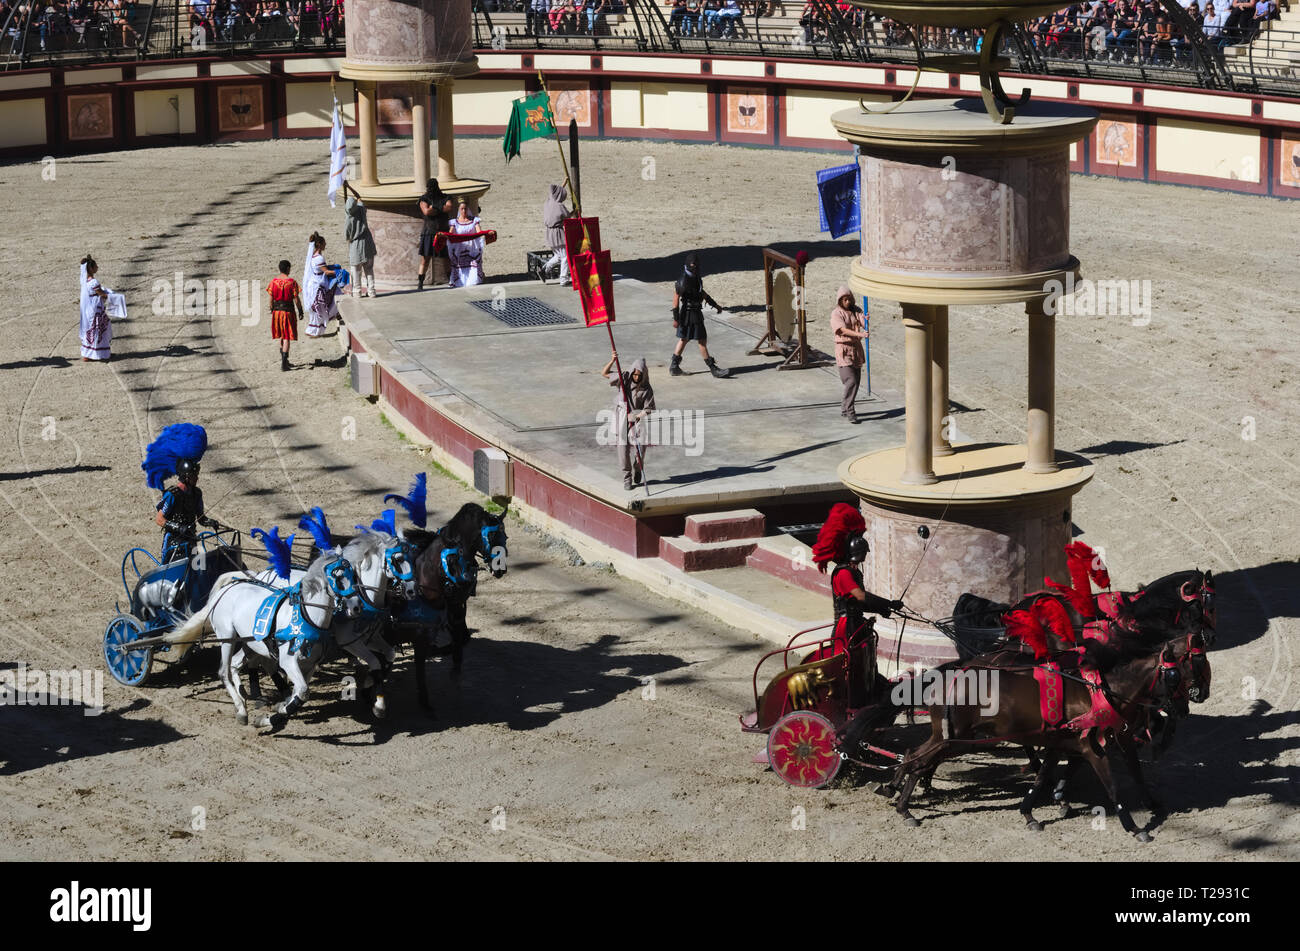 Les Epesses, France - September 8, 2018 : Chariot horse racing in a life-size Roman stadium in Puy du fou - Stock Image